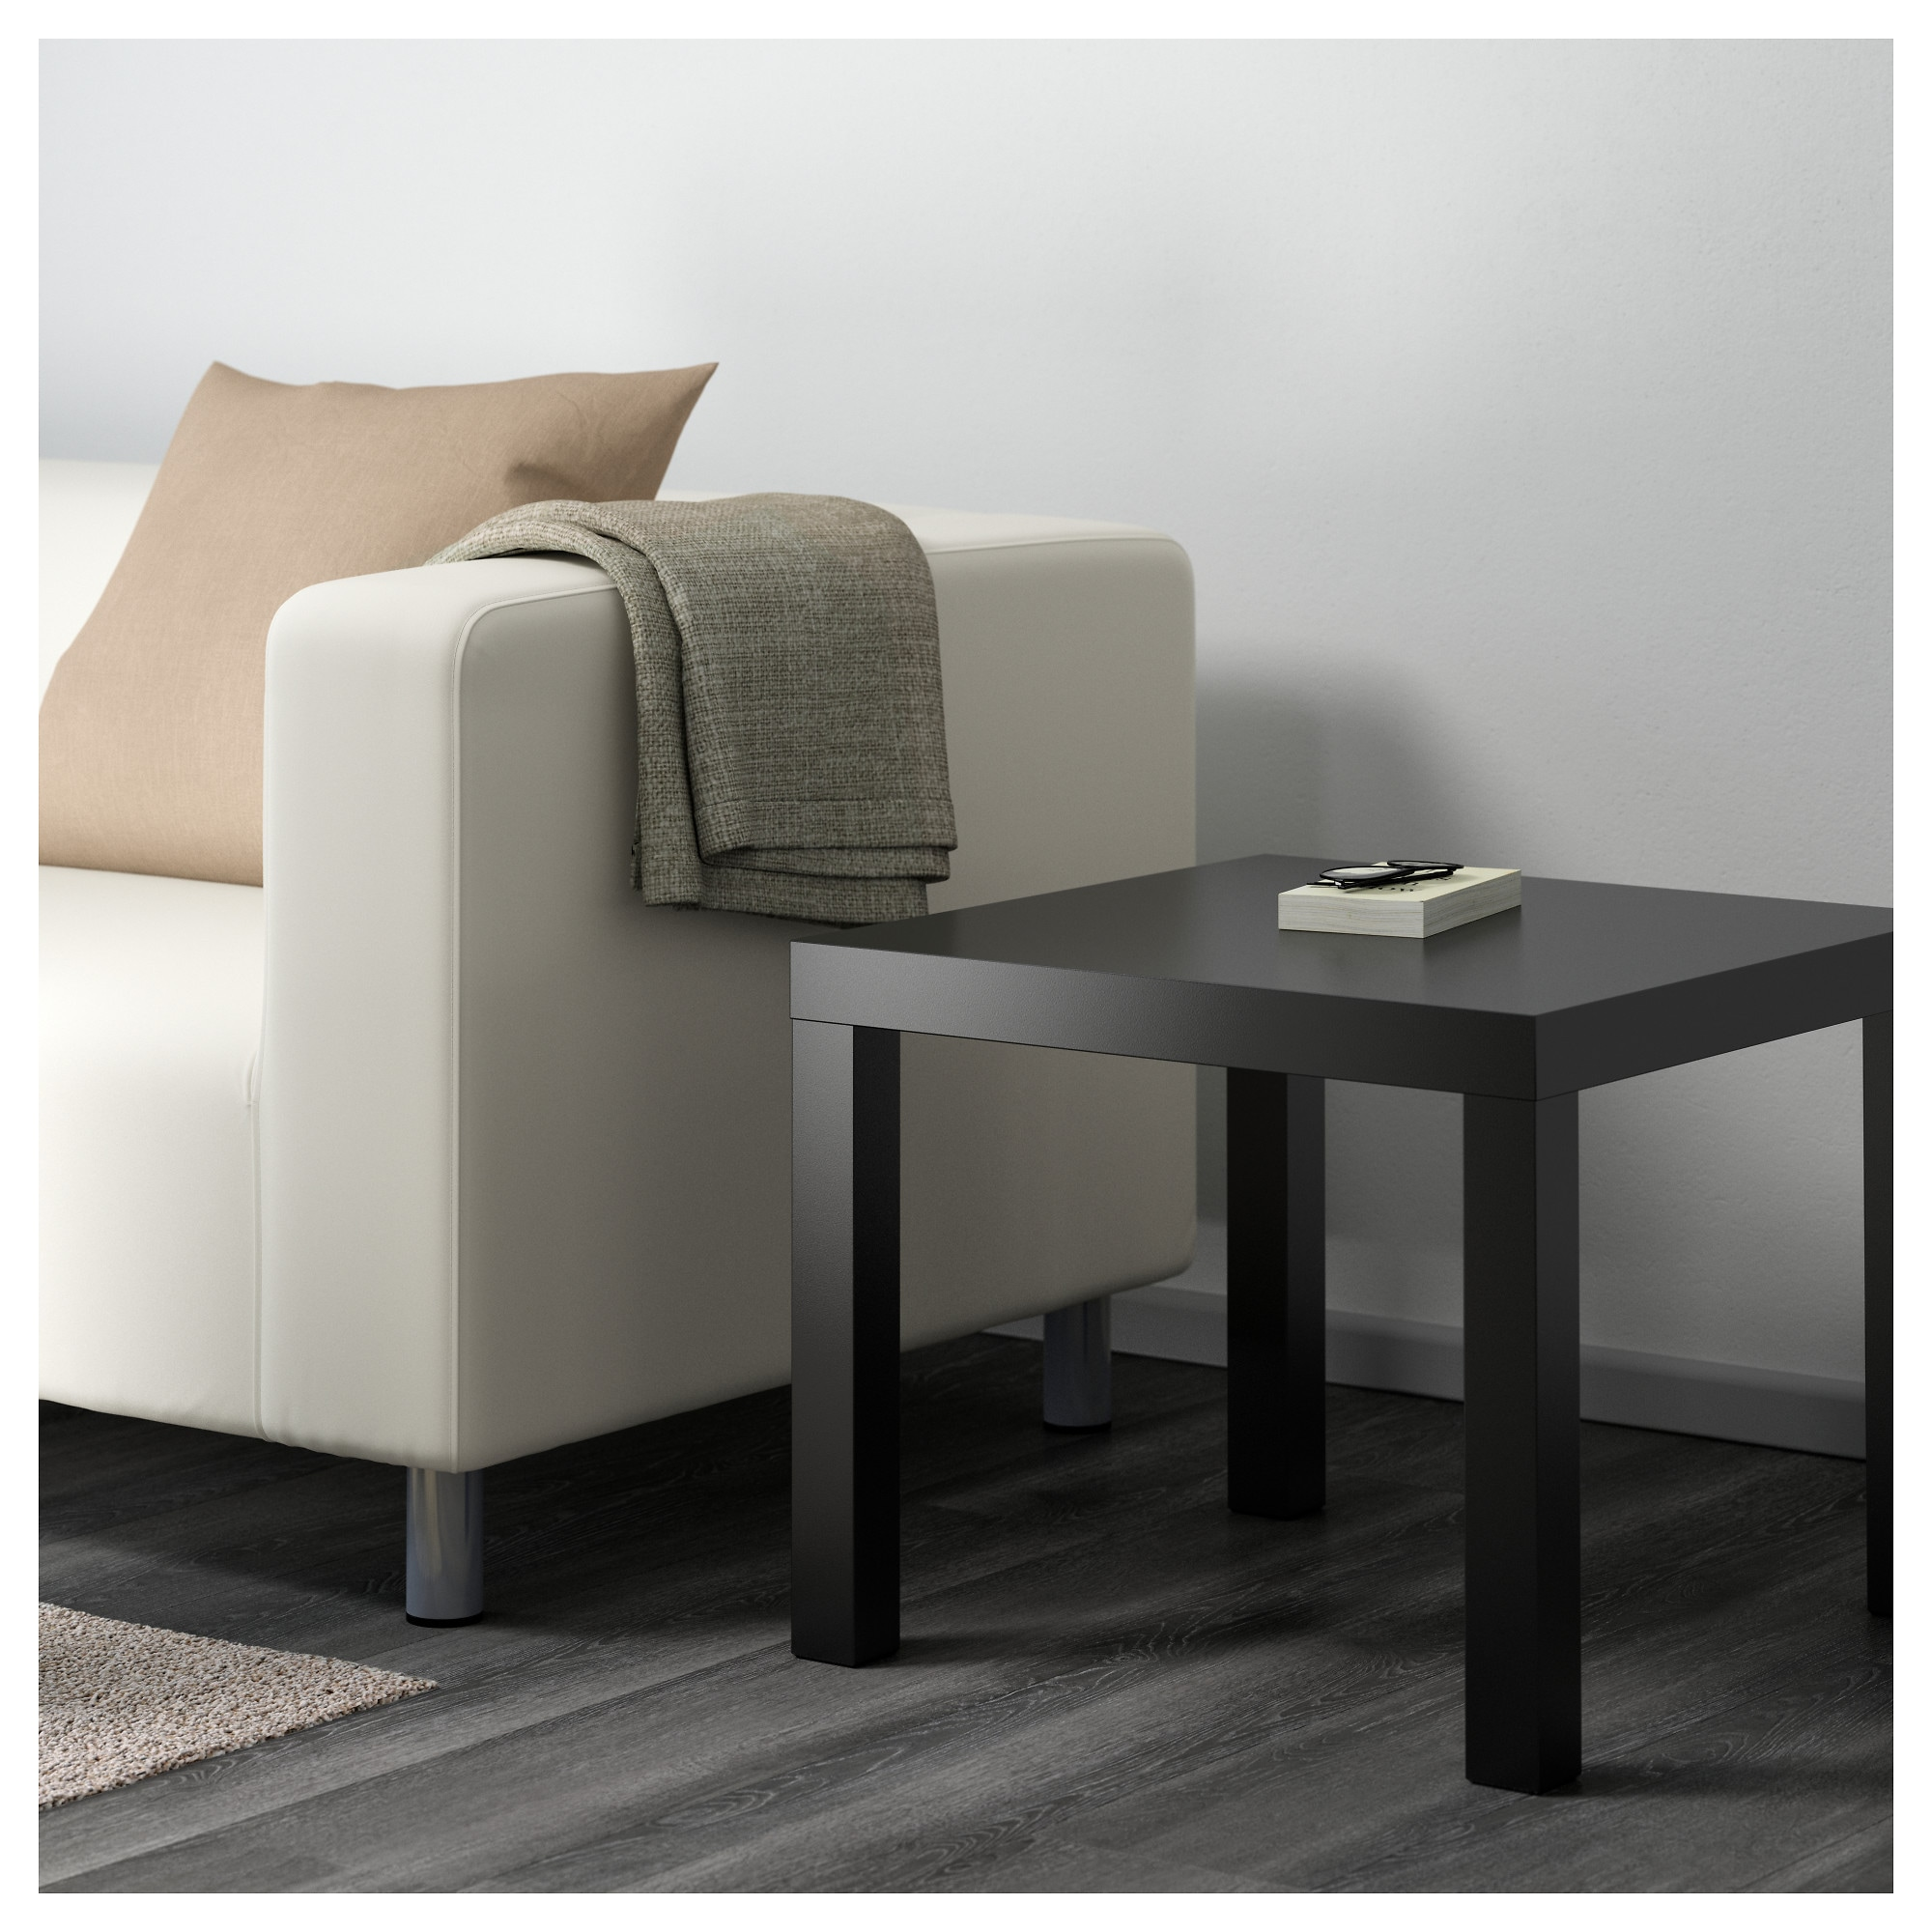 Side Tables For Living Rooms.  LACK Side table birch effect 21 5 8x21 8 IKEA